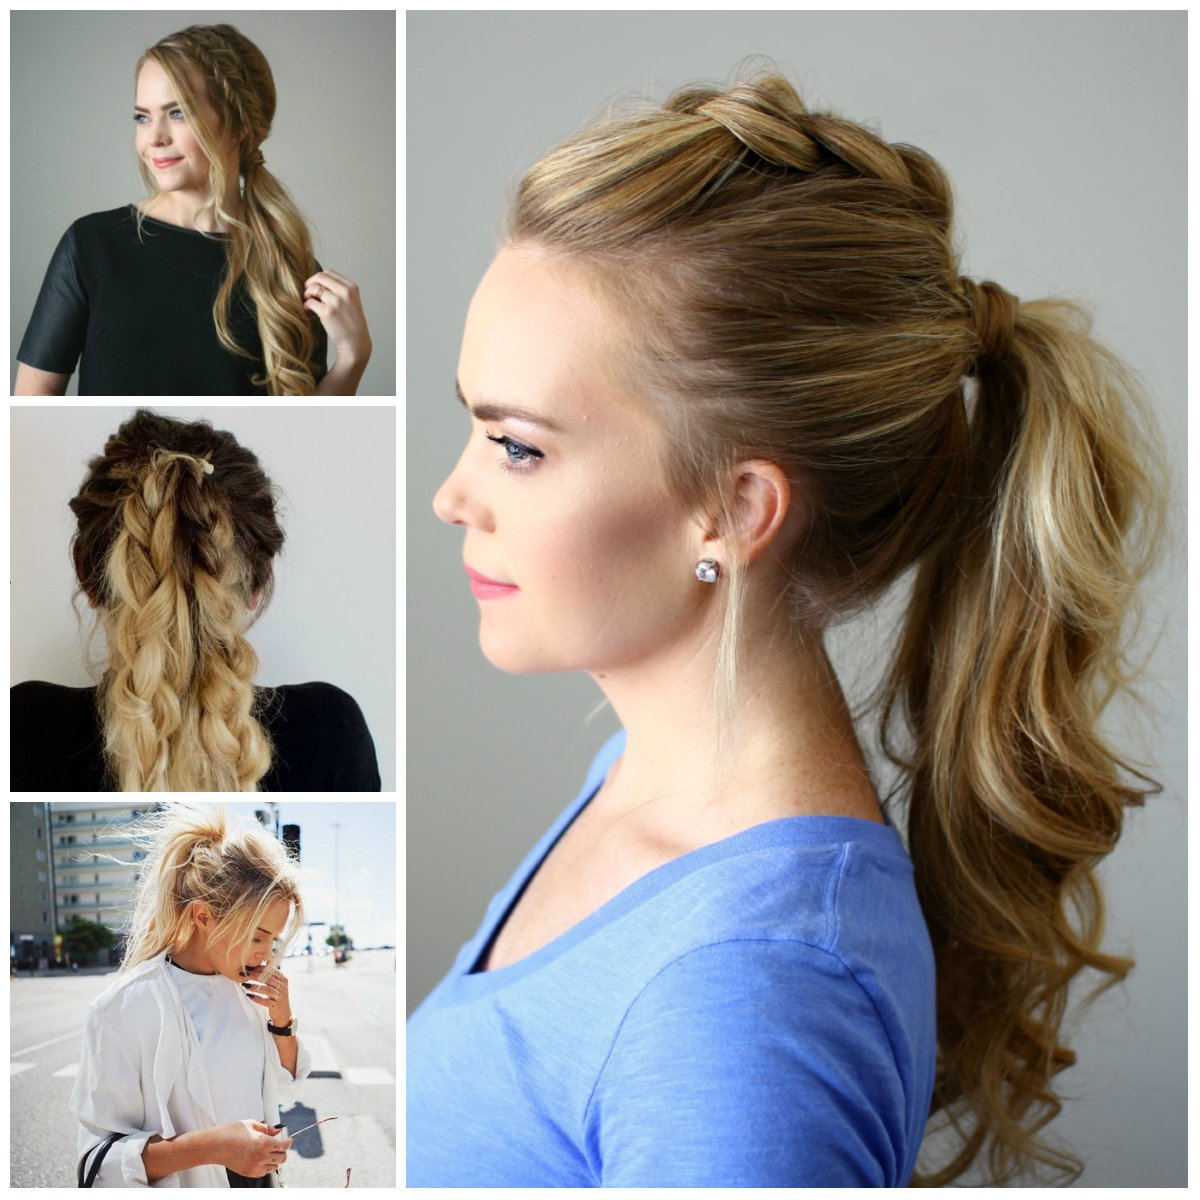 Free How To Do Easy Hairstyles At Home 2017 For Girls Wallpaper